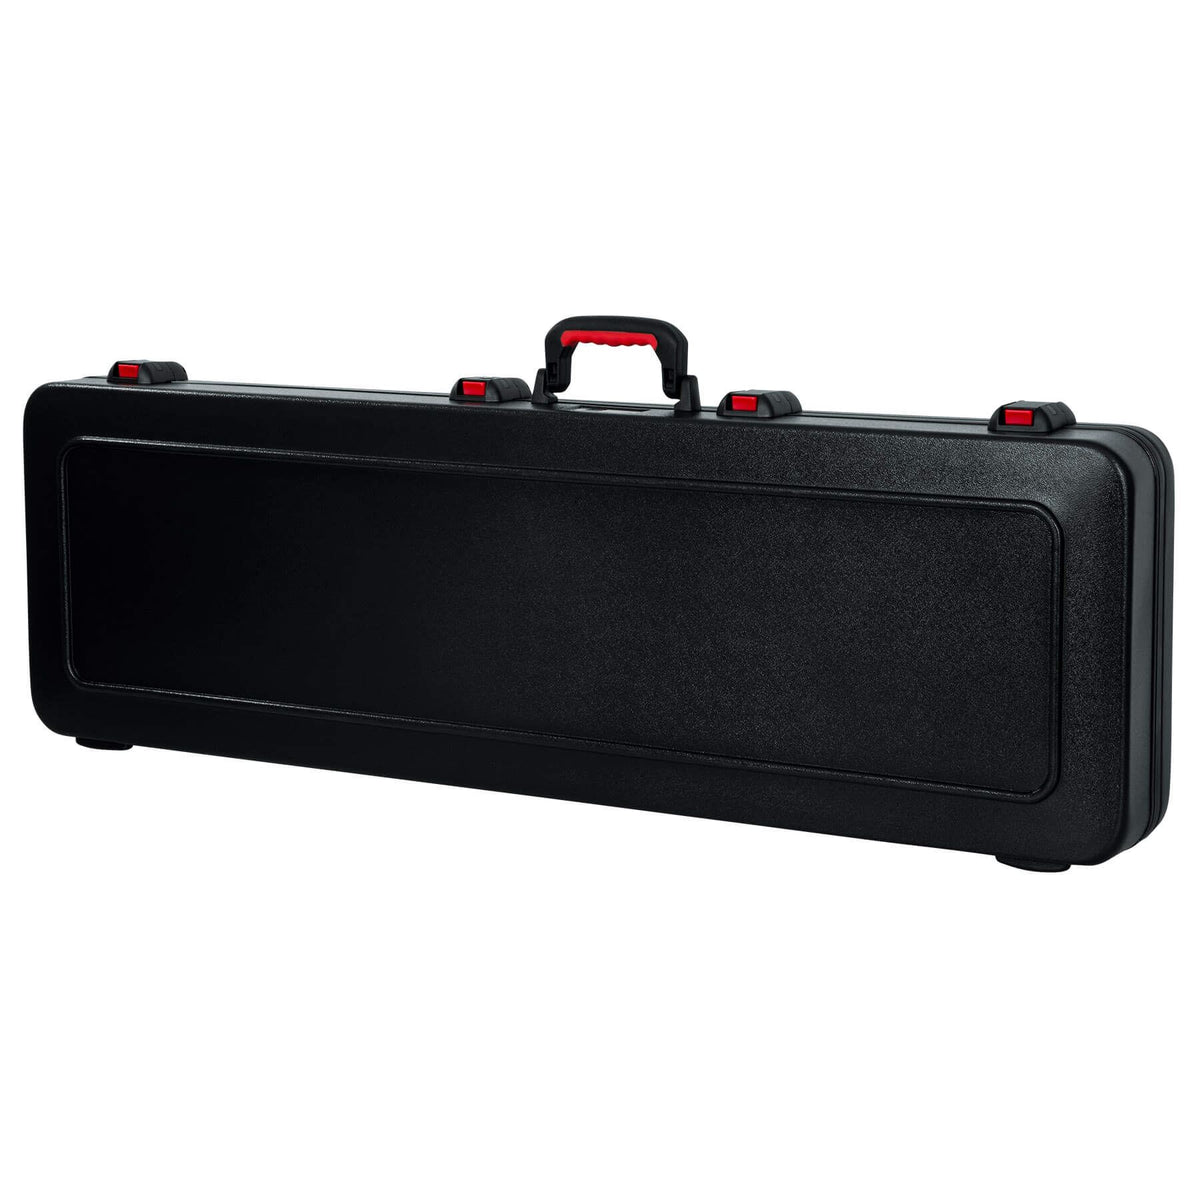 Gator ATA Bass Guitar Case fits Fender Standard Precision Bass